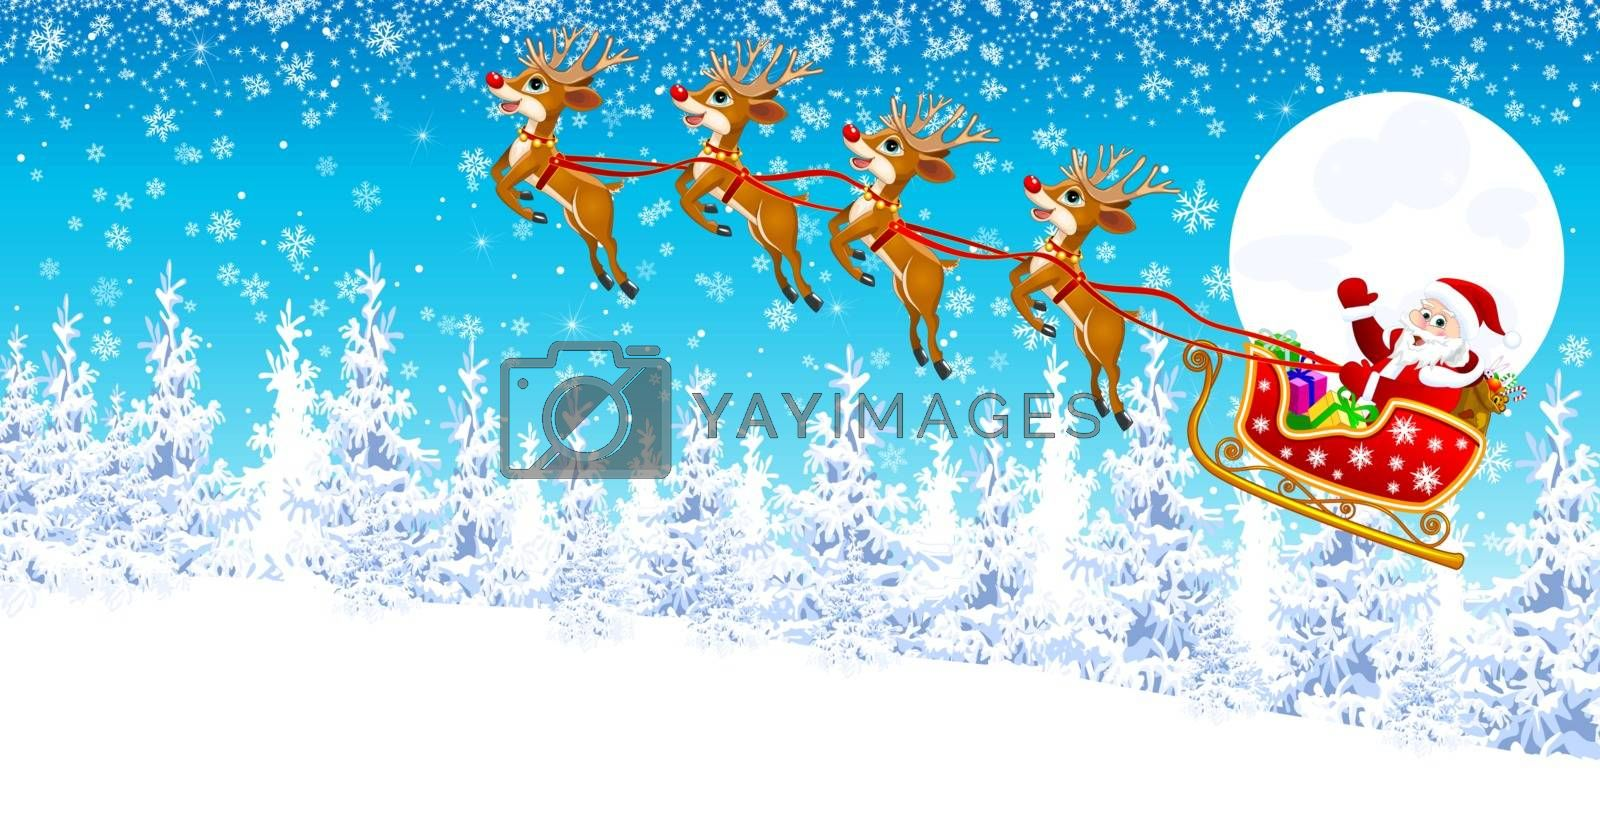 Santa in sleigh with deers on the background of the moon, the winter forest and snowflakes.